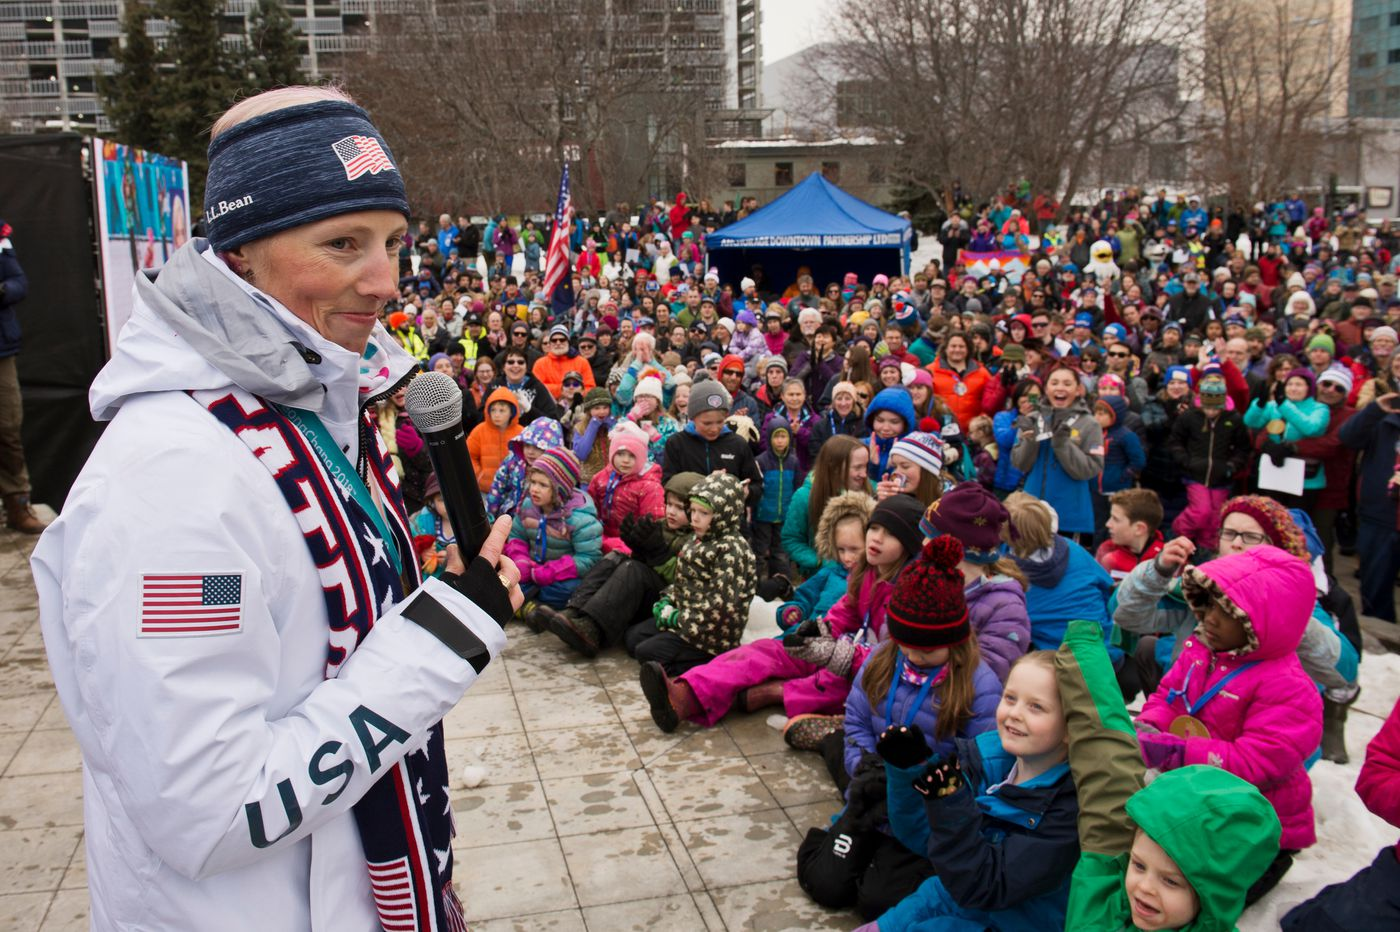 Kikkan Randall speaks to a crowd gathered in Town Square on April 4. Hundreds of Alaskans filled Town Square Park in Anchorage for a celebration of gold medal winner Randall and the state's other Winter Olympians. (Marc Lester / ADN)